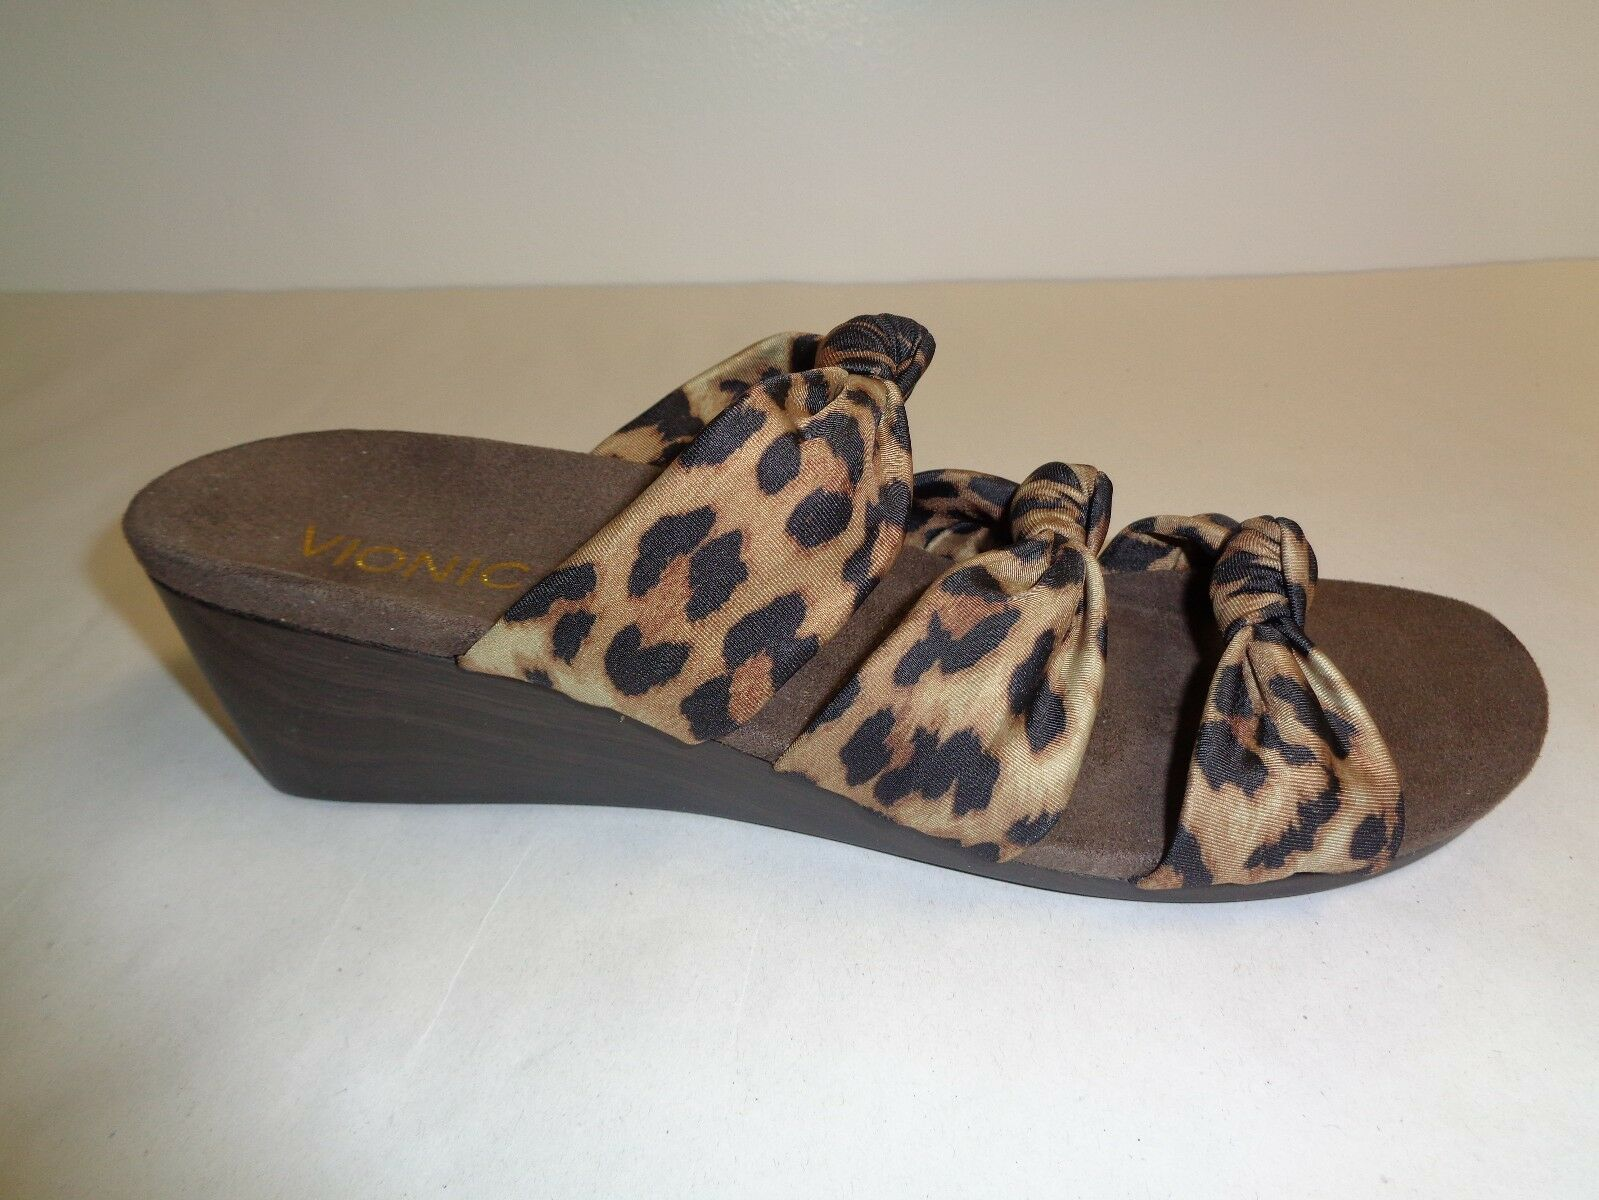 Vionic Size 7 PARK RIZZO Tan Leopard Wedge Sandals New Womens shoes